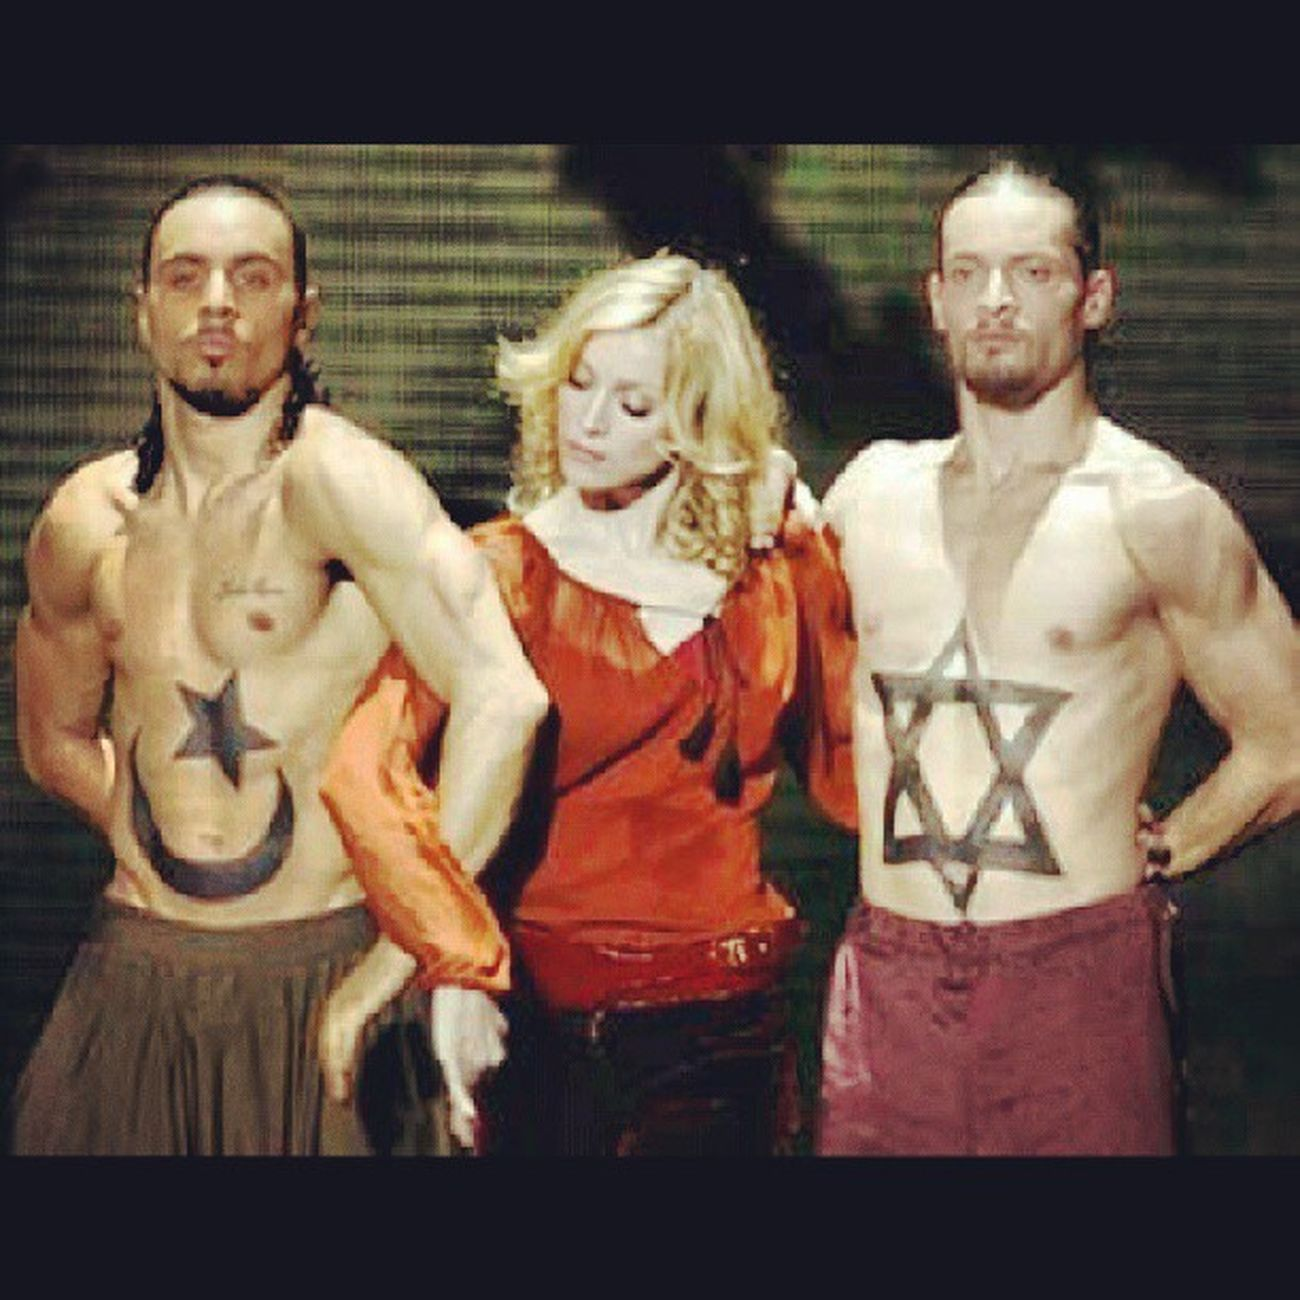 Co Exicst Forever Peace & Love in the world! Madonna Arab Muslium Israeli Jewish Shalom Salam